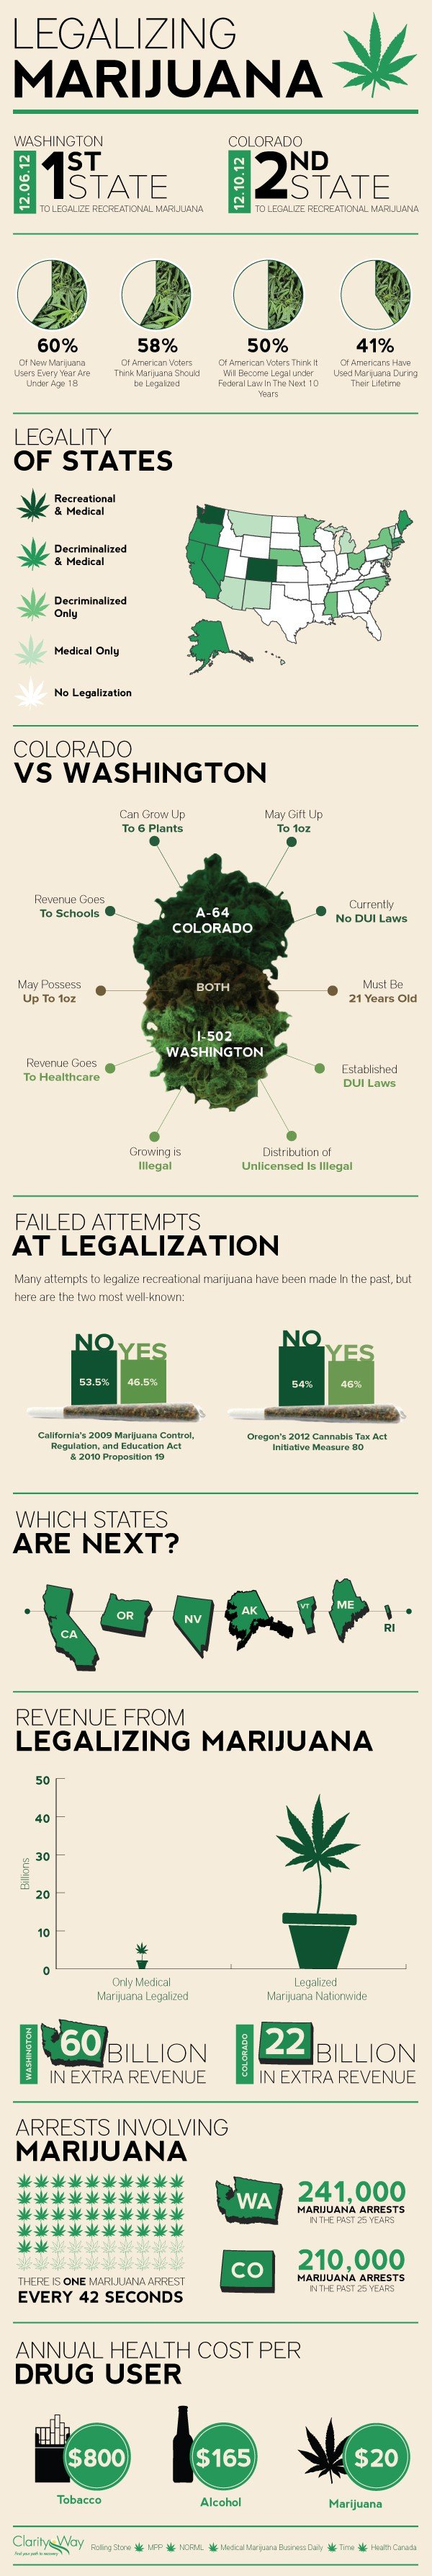 benefits to legalizing marijuana Pros and cons of legalizing recreational marijuana the decriminalization of weed would allow more people to use the drug for its believed health benefits legalizing marijuana cons legal marijuana supporters have argued that it's not as addictive as.